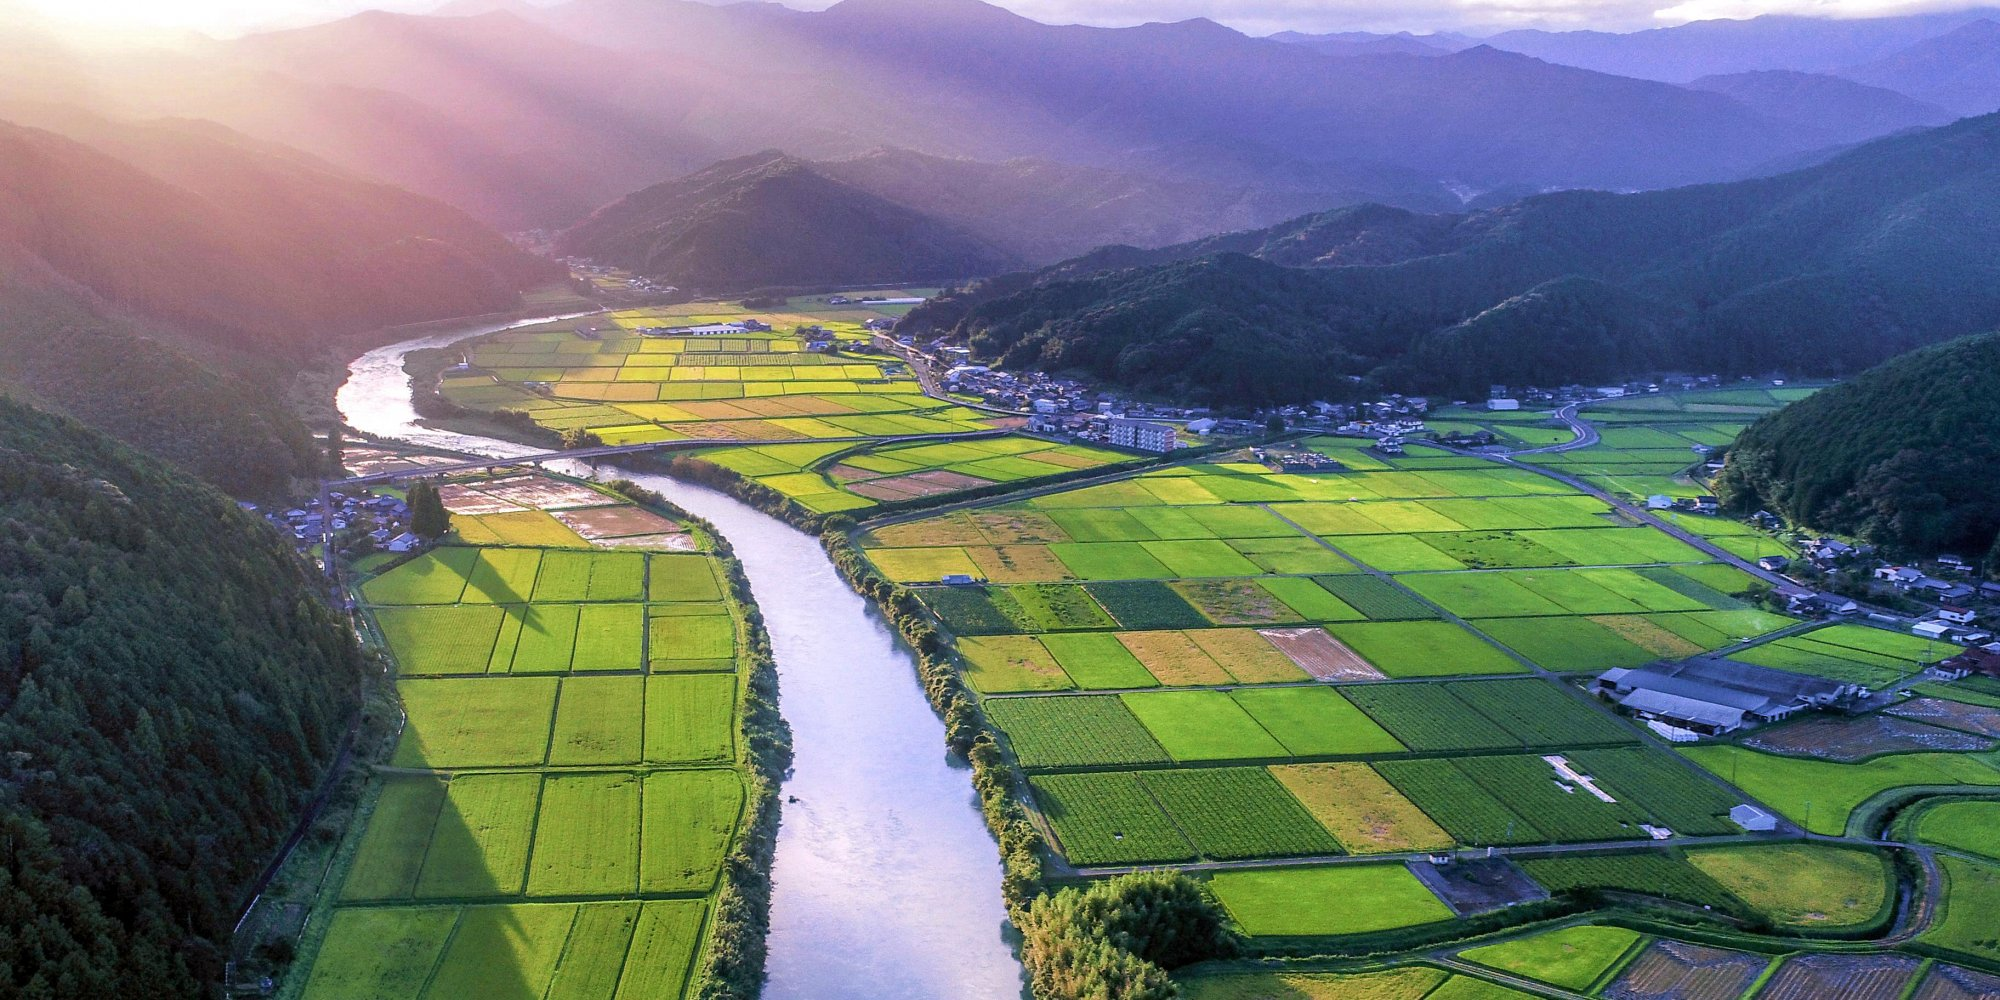 Shimanto River Valley: Japan's Best Kept Secret